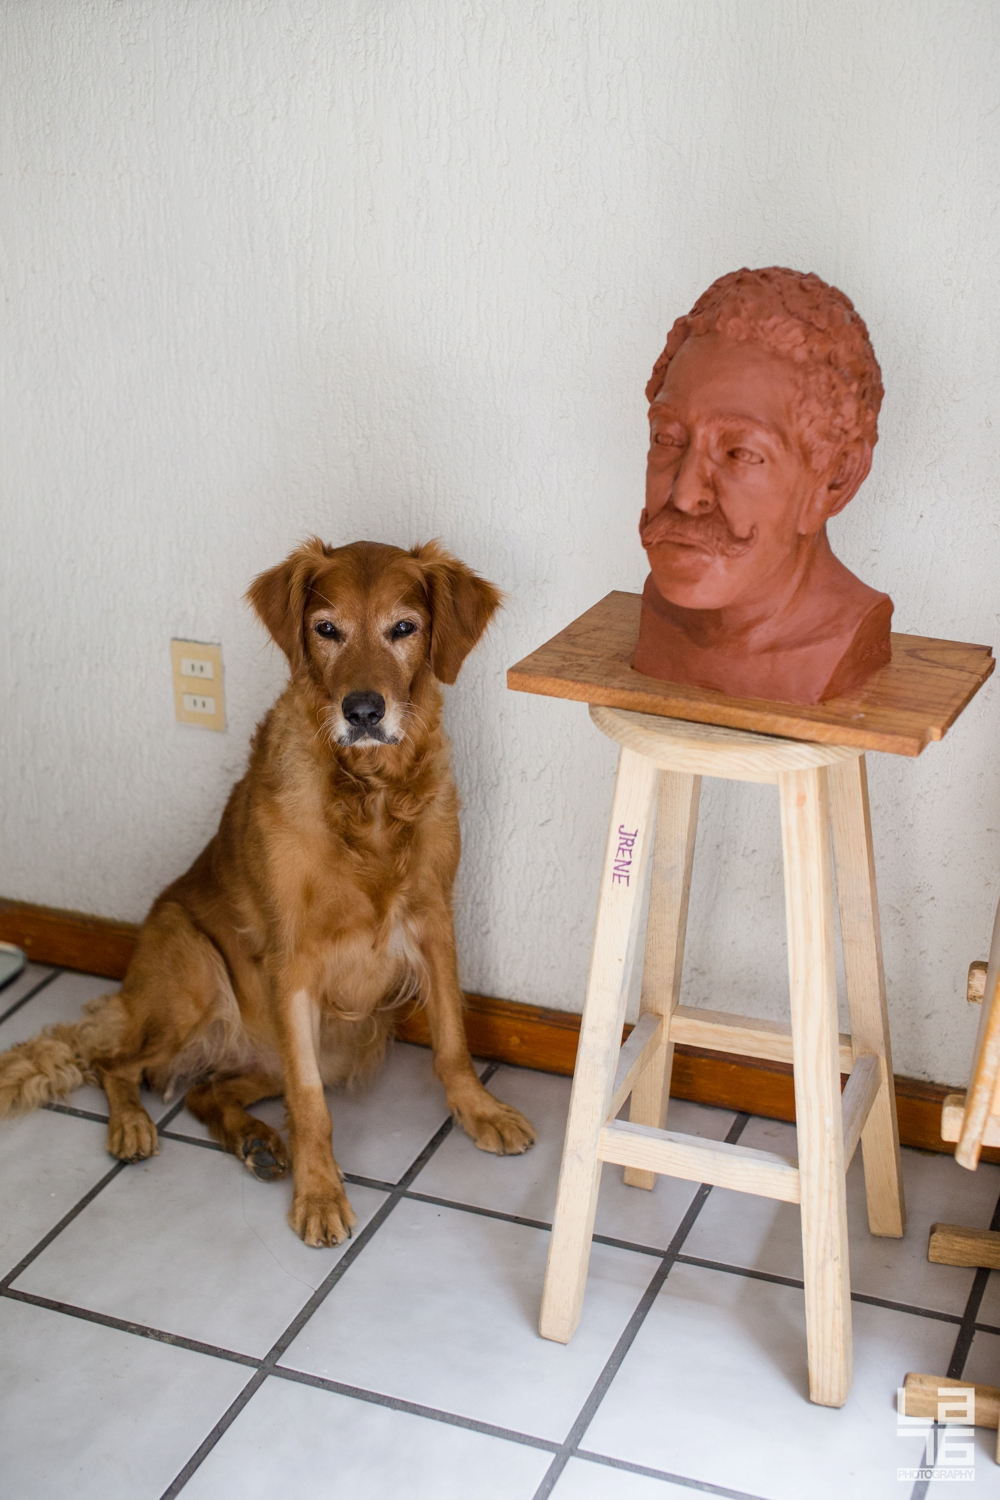 Our dog Zlatka sitting next to a clay portrait sculpture of my father in law, created by my mother in law.